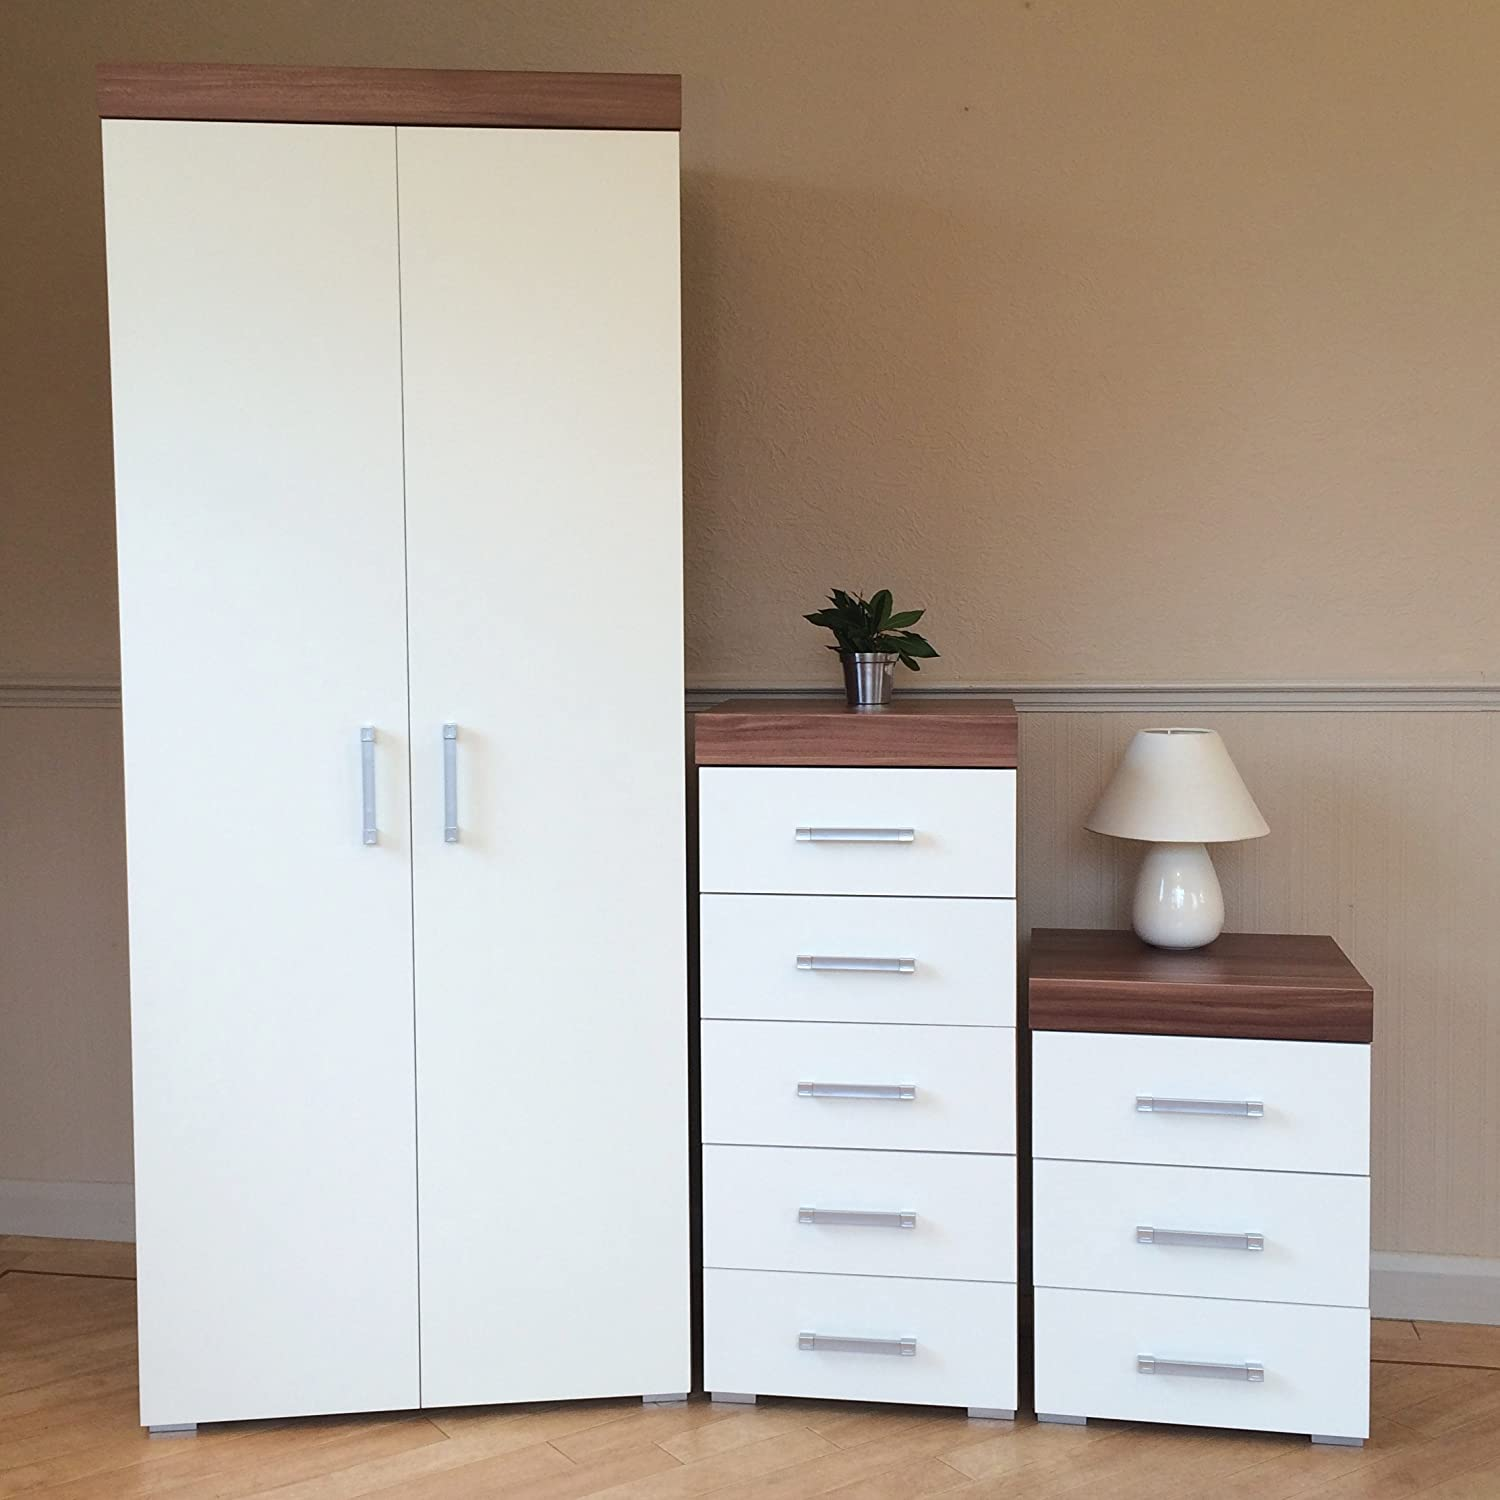 DRP Trading White & Walnut Bedroom Set! Wardrobe, 5 Drawer Chest & 3 Draw Bedside Cabinet NEW